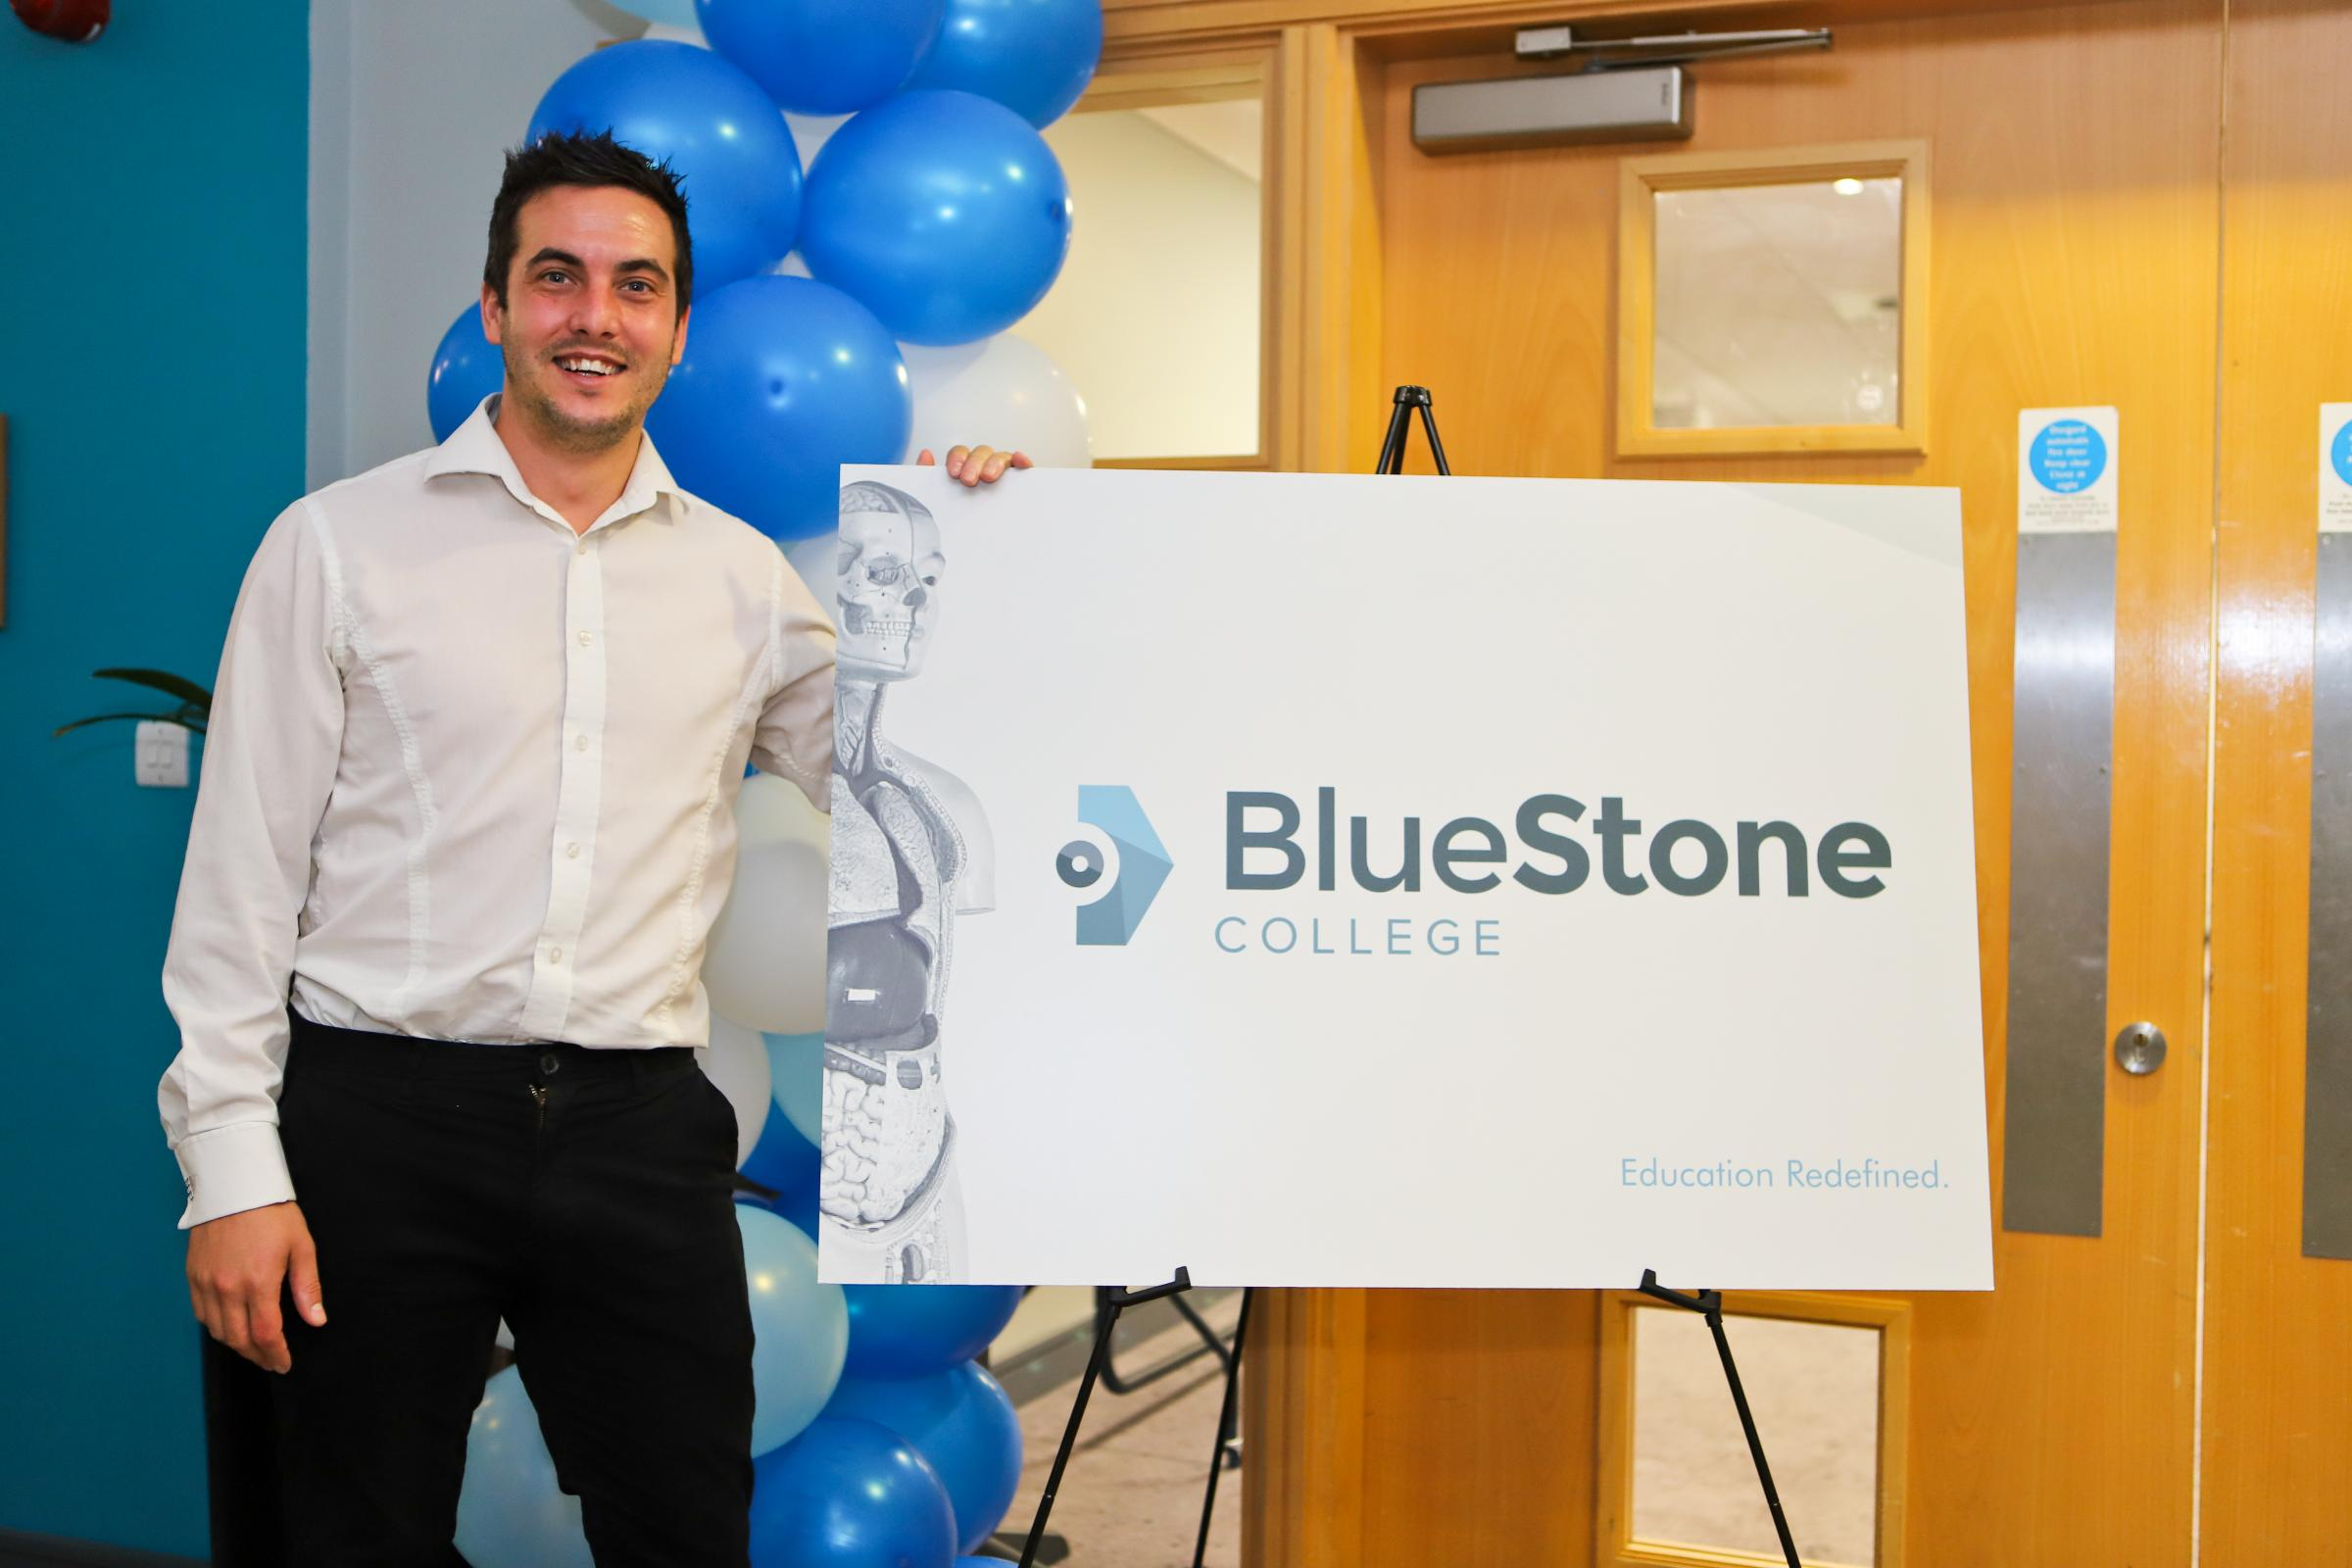 Joe Turner, founder and chief executive of Bluestone College